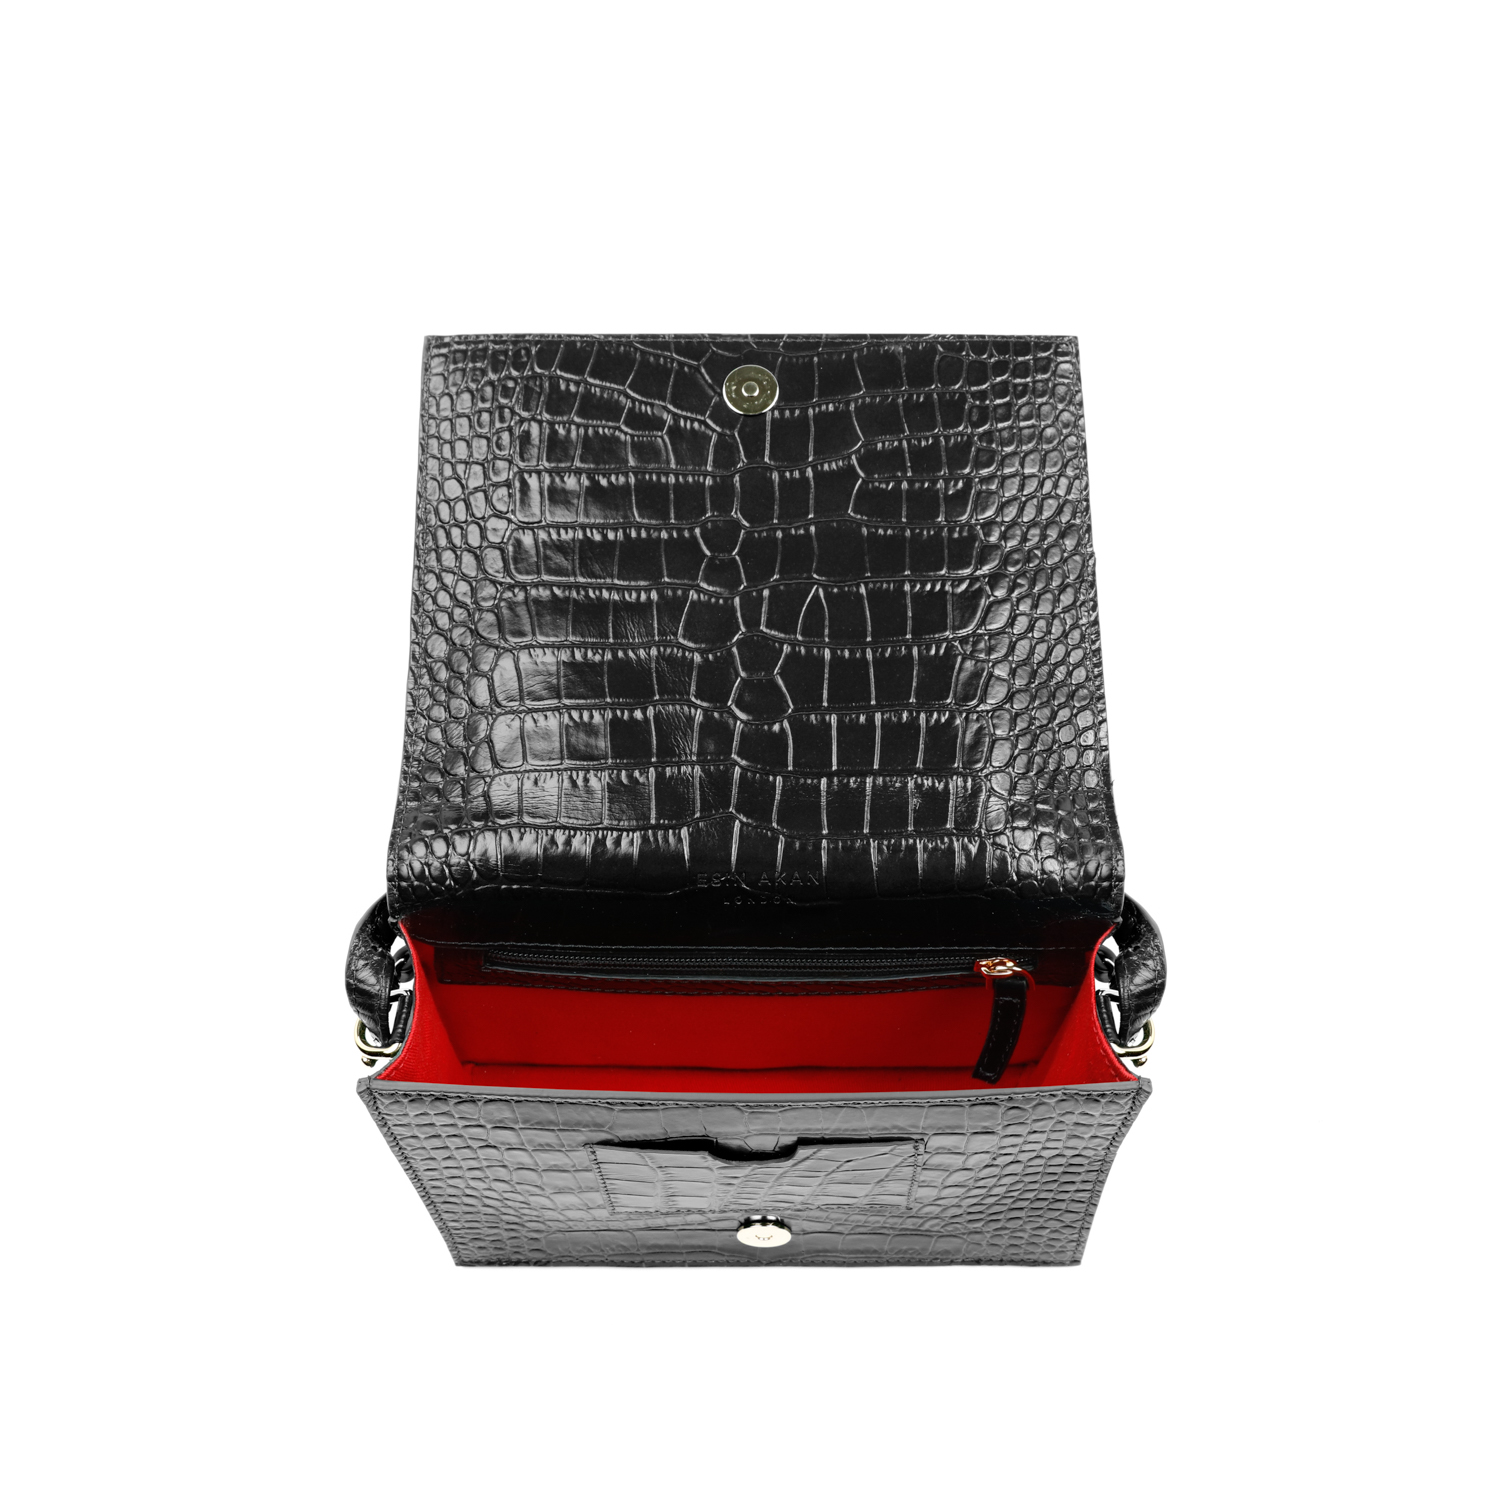 Midi Chelsea Clutch Bag by Esin Akan on curated-crowd.com